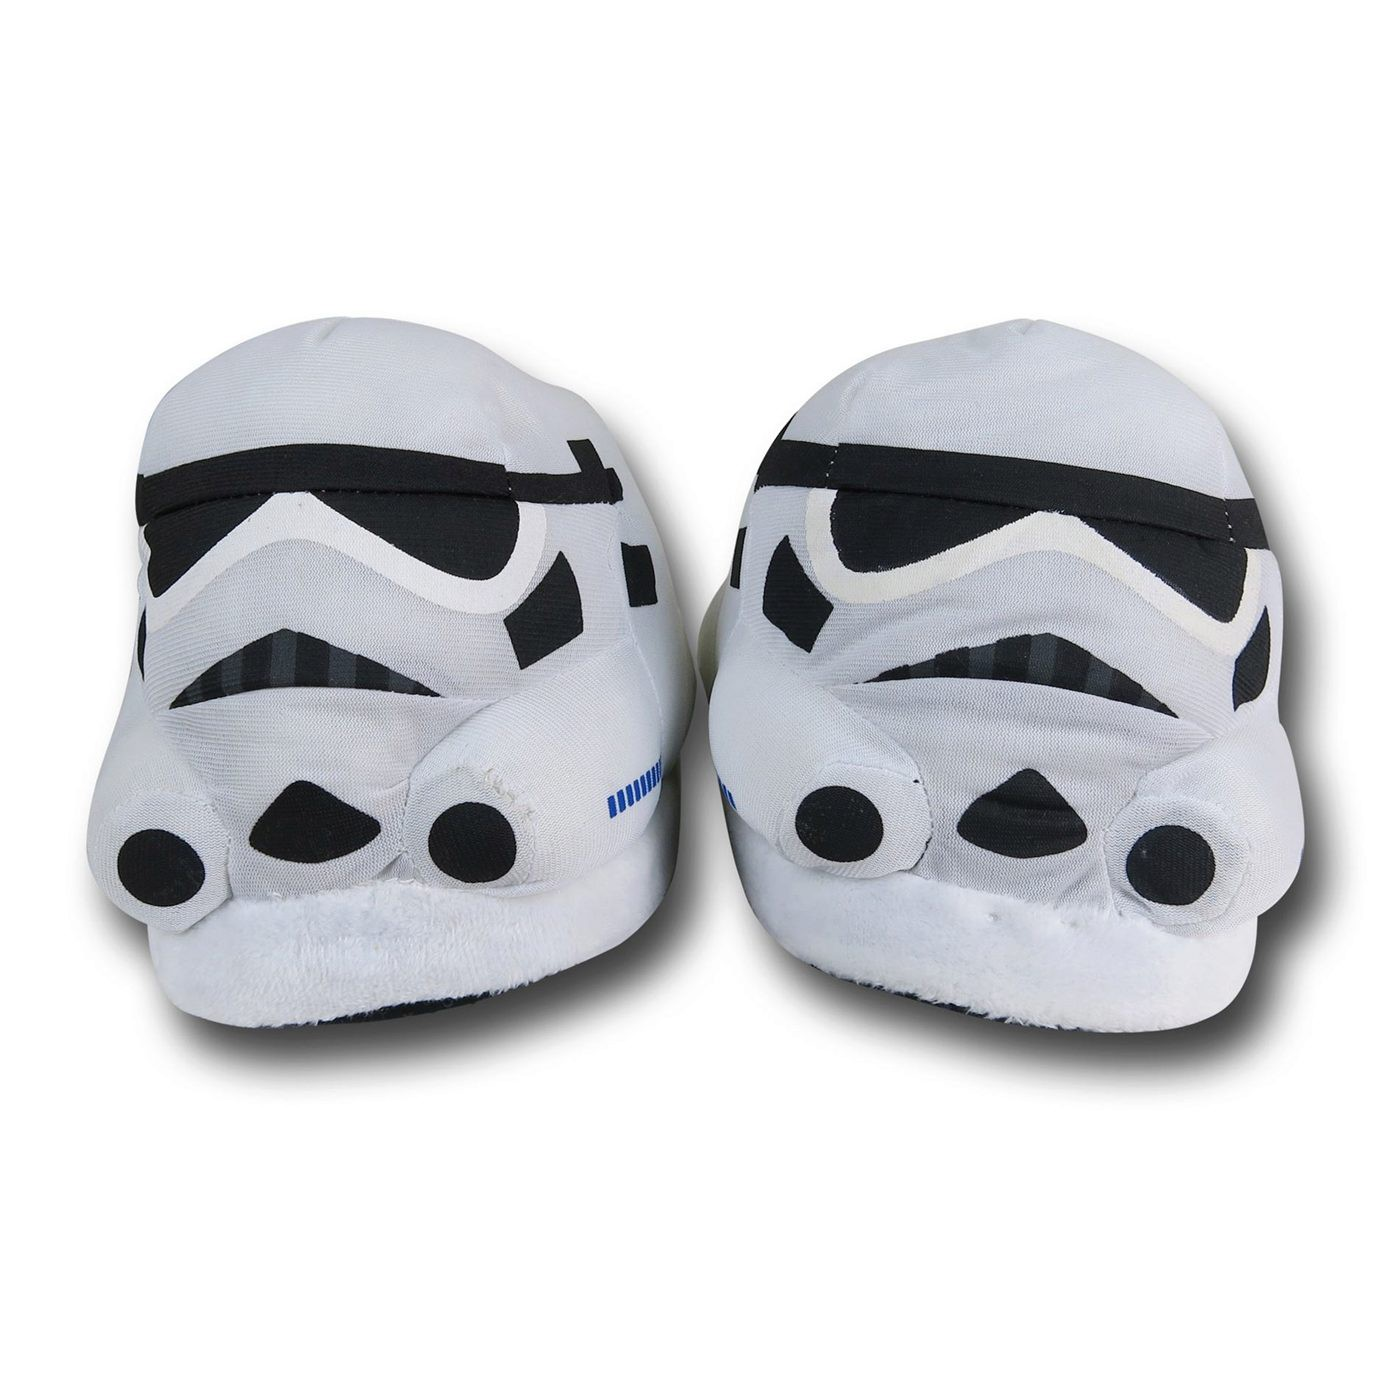 Star Wars Stormtrooper Slippers